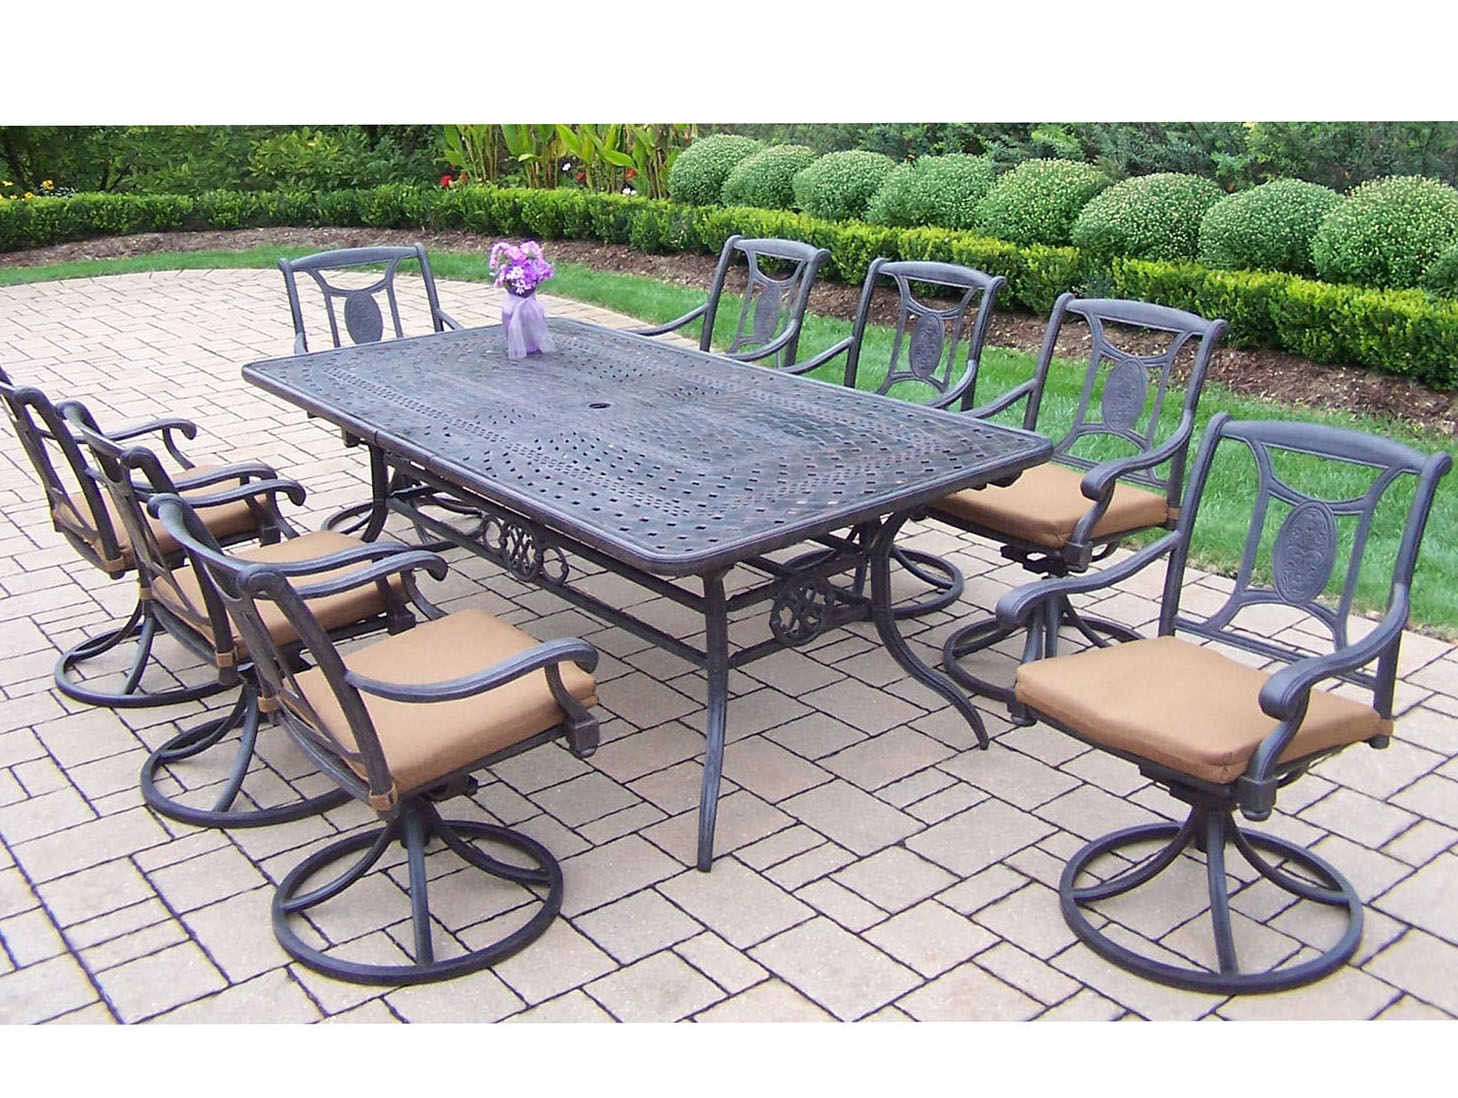 Purchase Victoria Aged Dining Set Extendable Table Product Photo